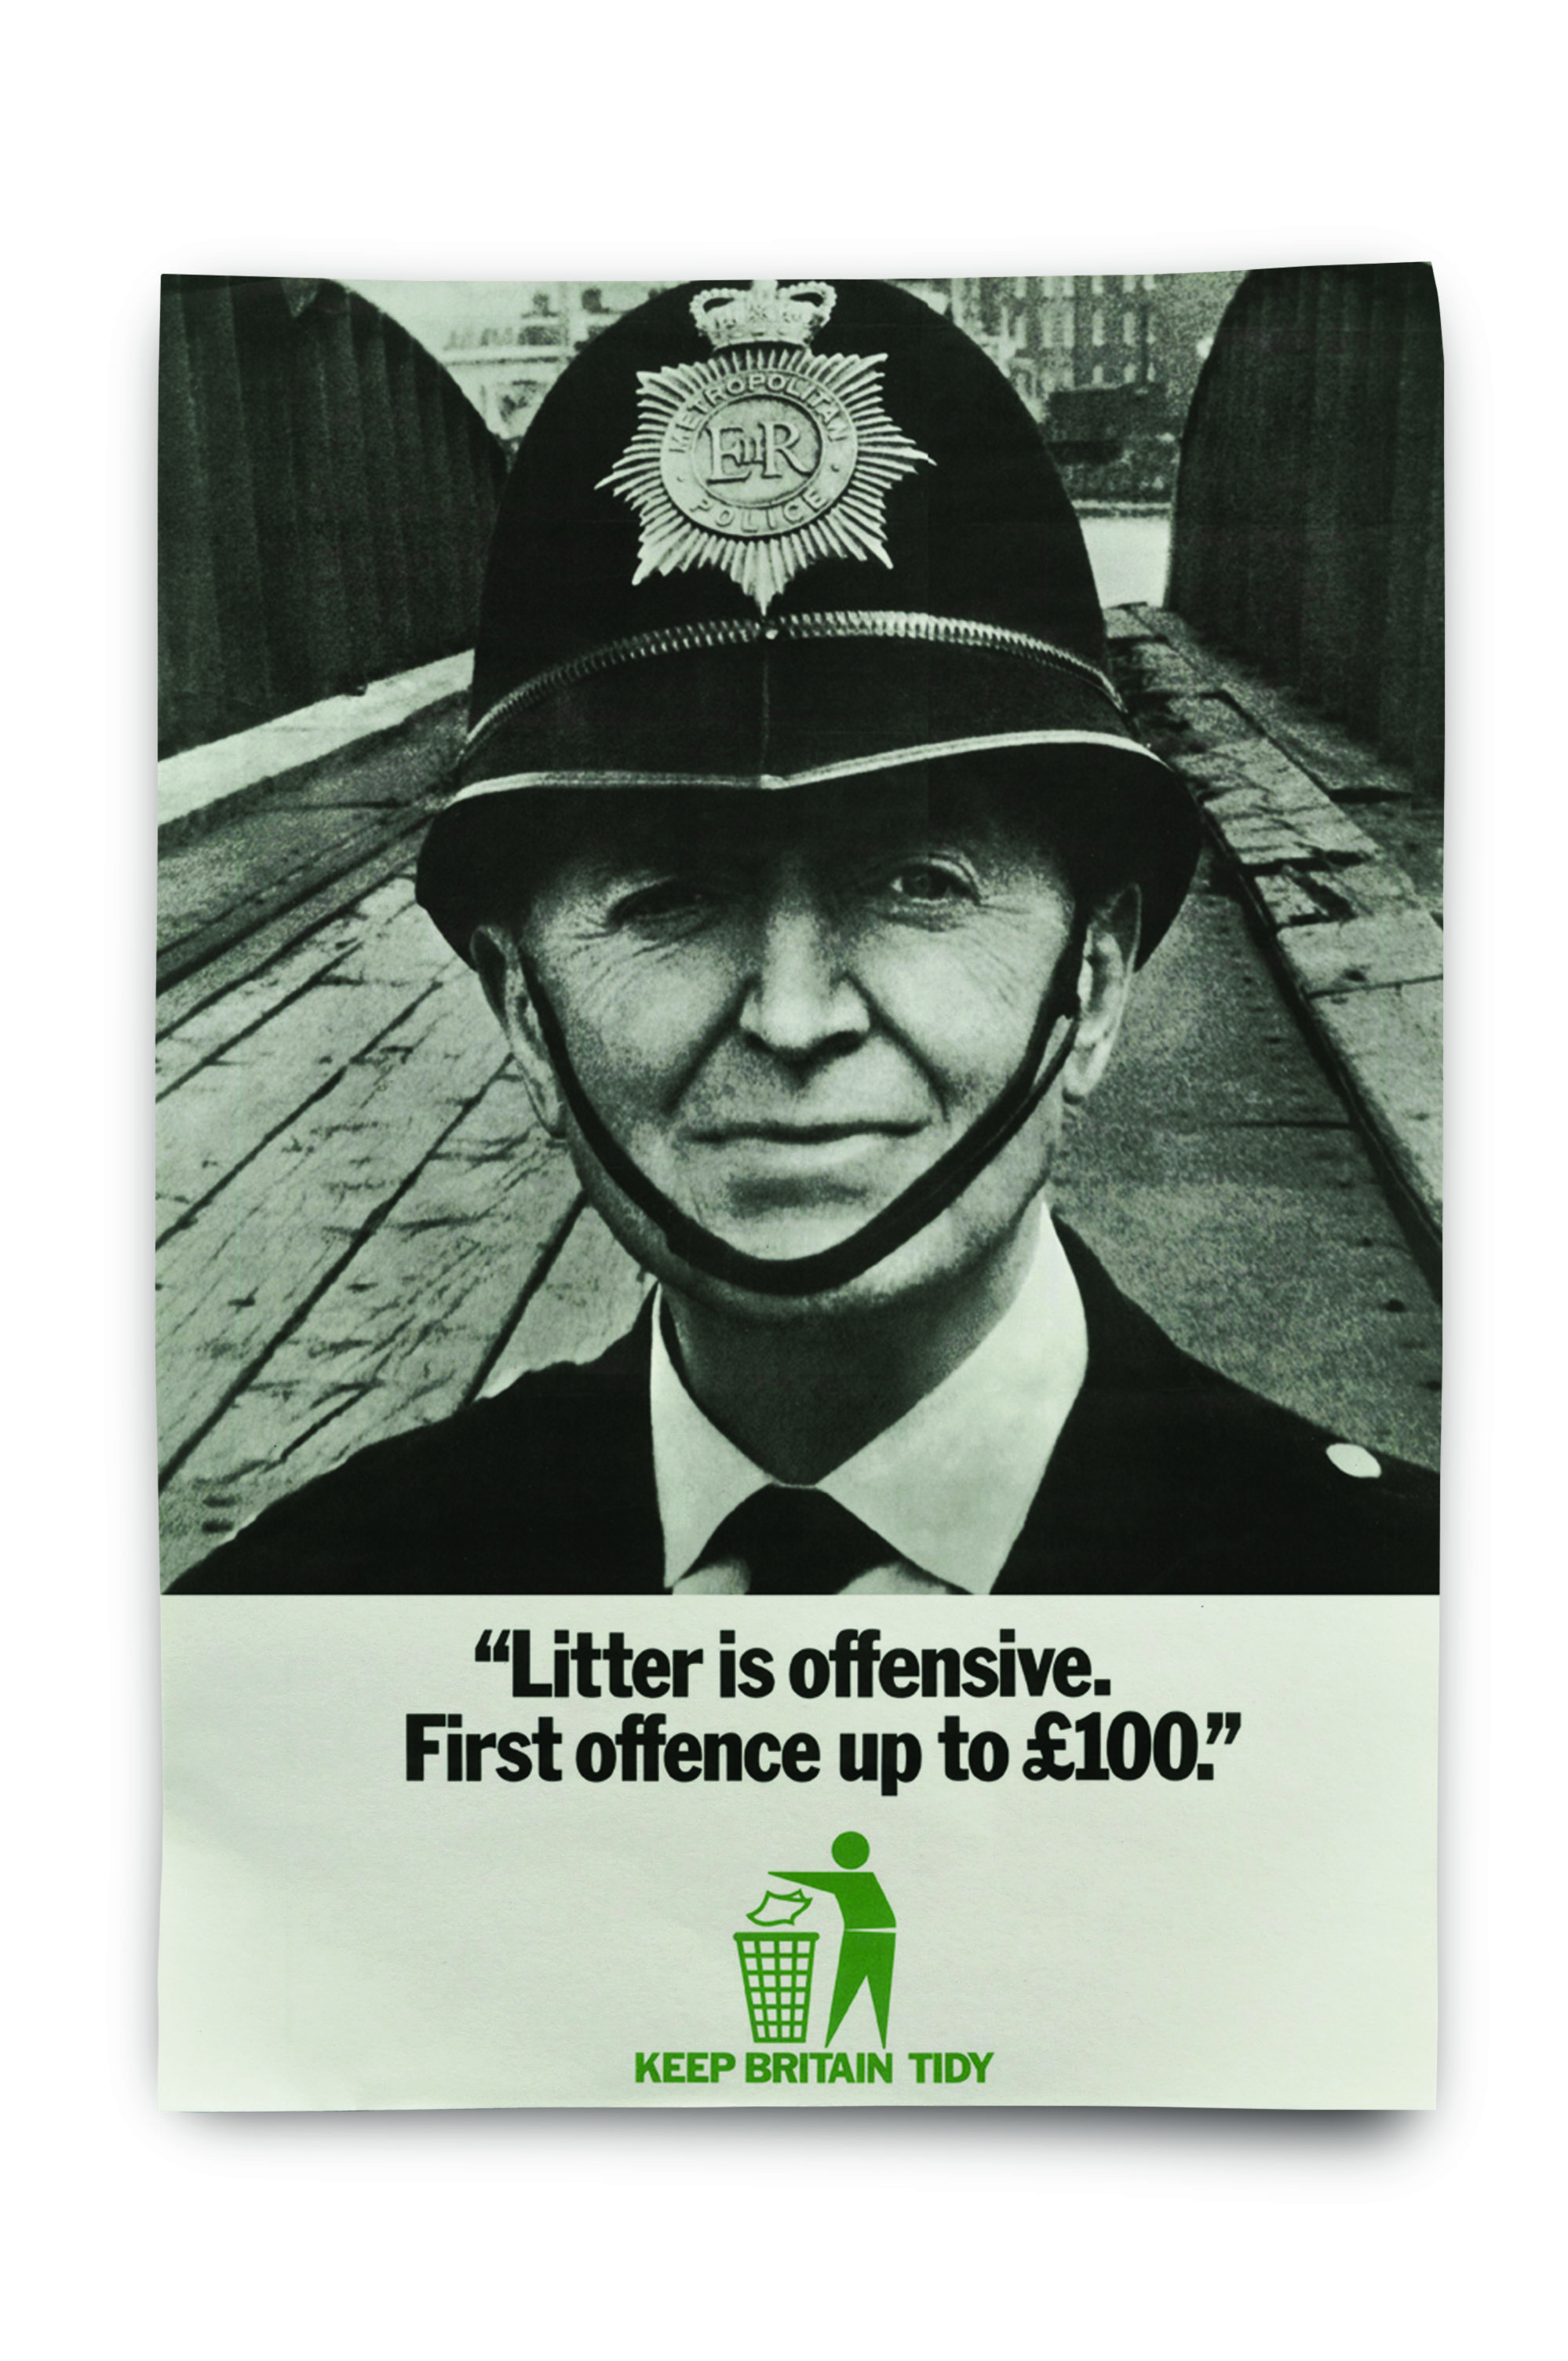 A poster by Keep Britain Tidy featuring a policeman